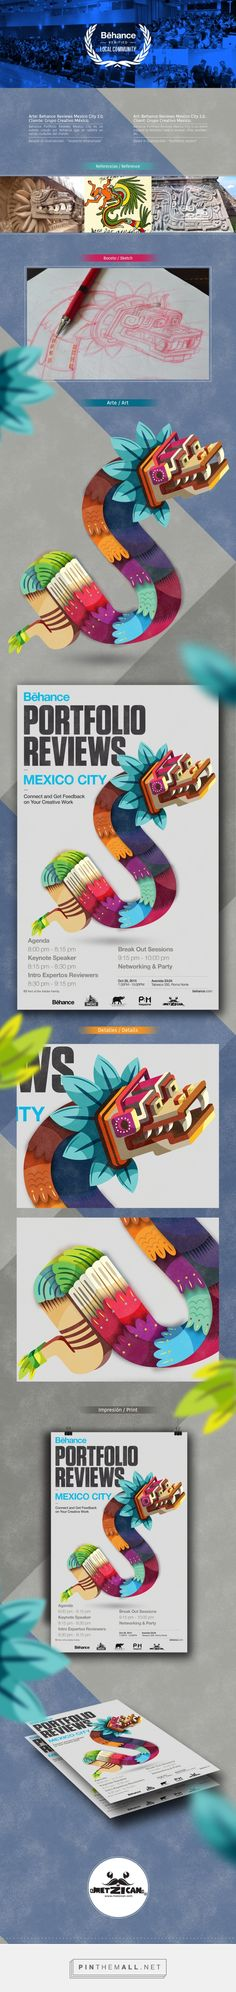 Behance Portafolio Reviews Mexico City / Quetzalcóatl on Behance - created via http://pinthemall.net